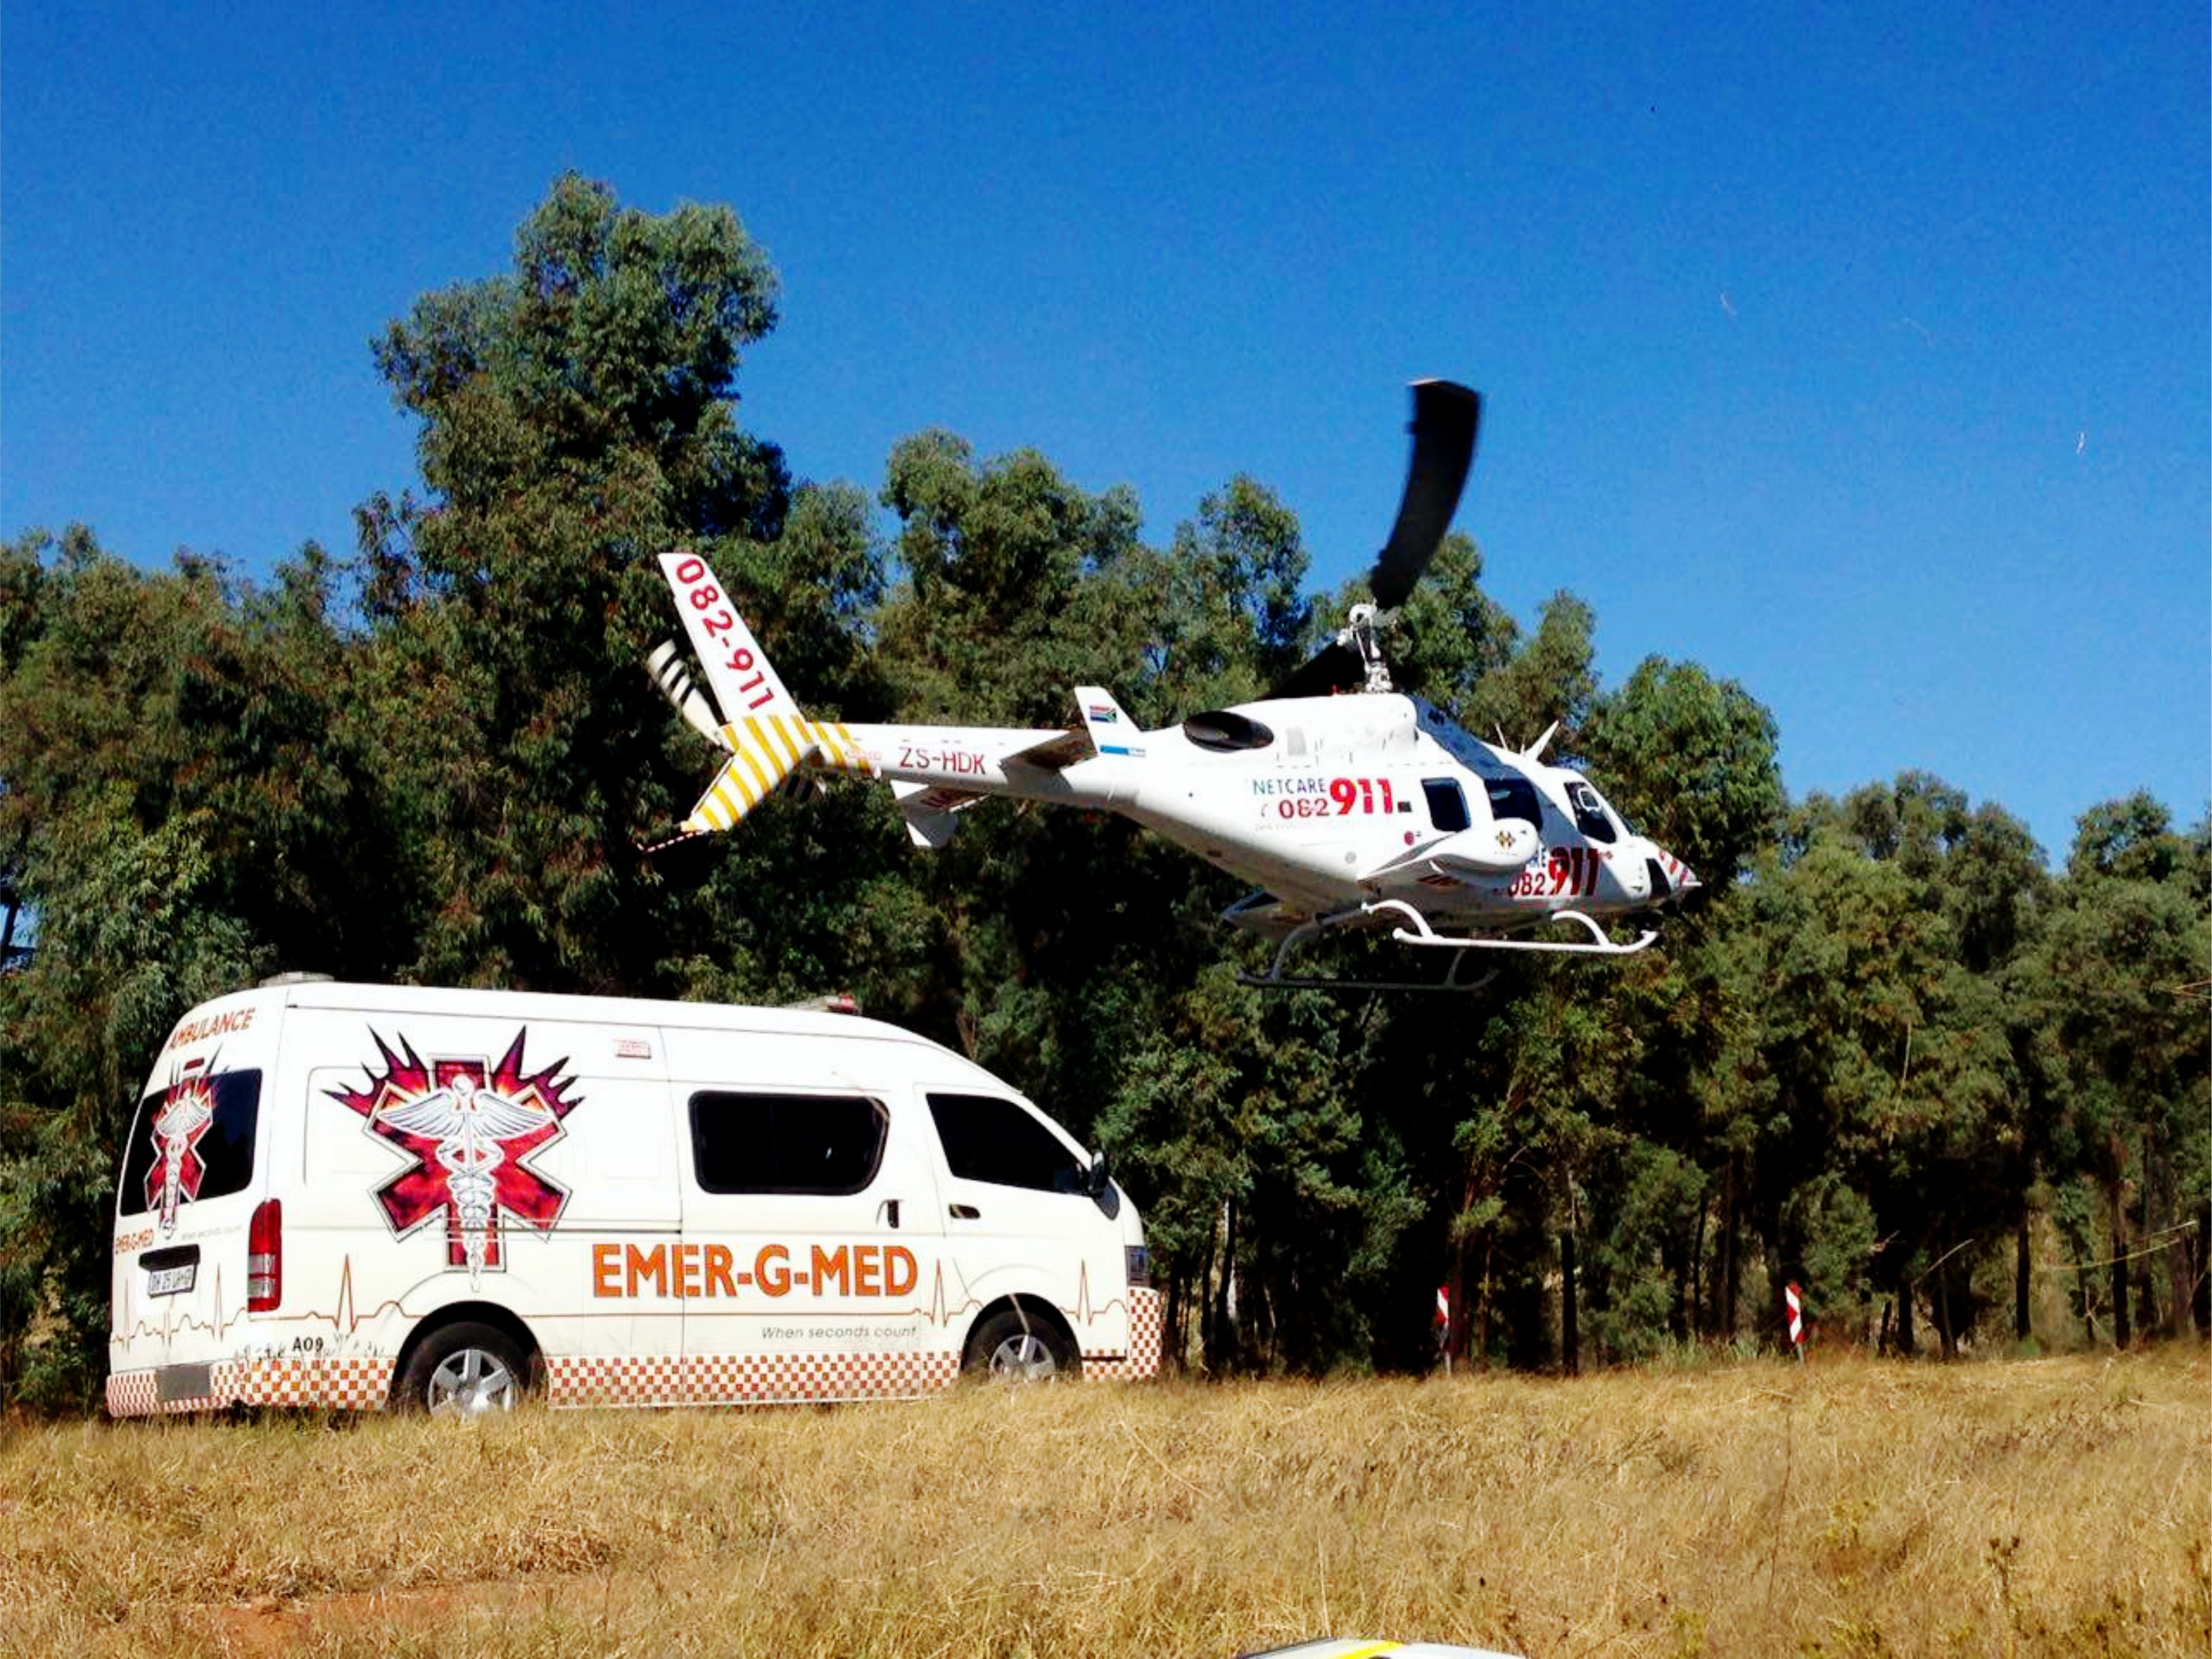 Netcare 911 Air Ambulance